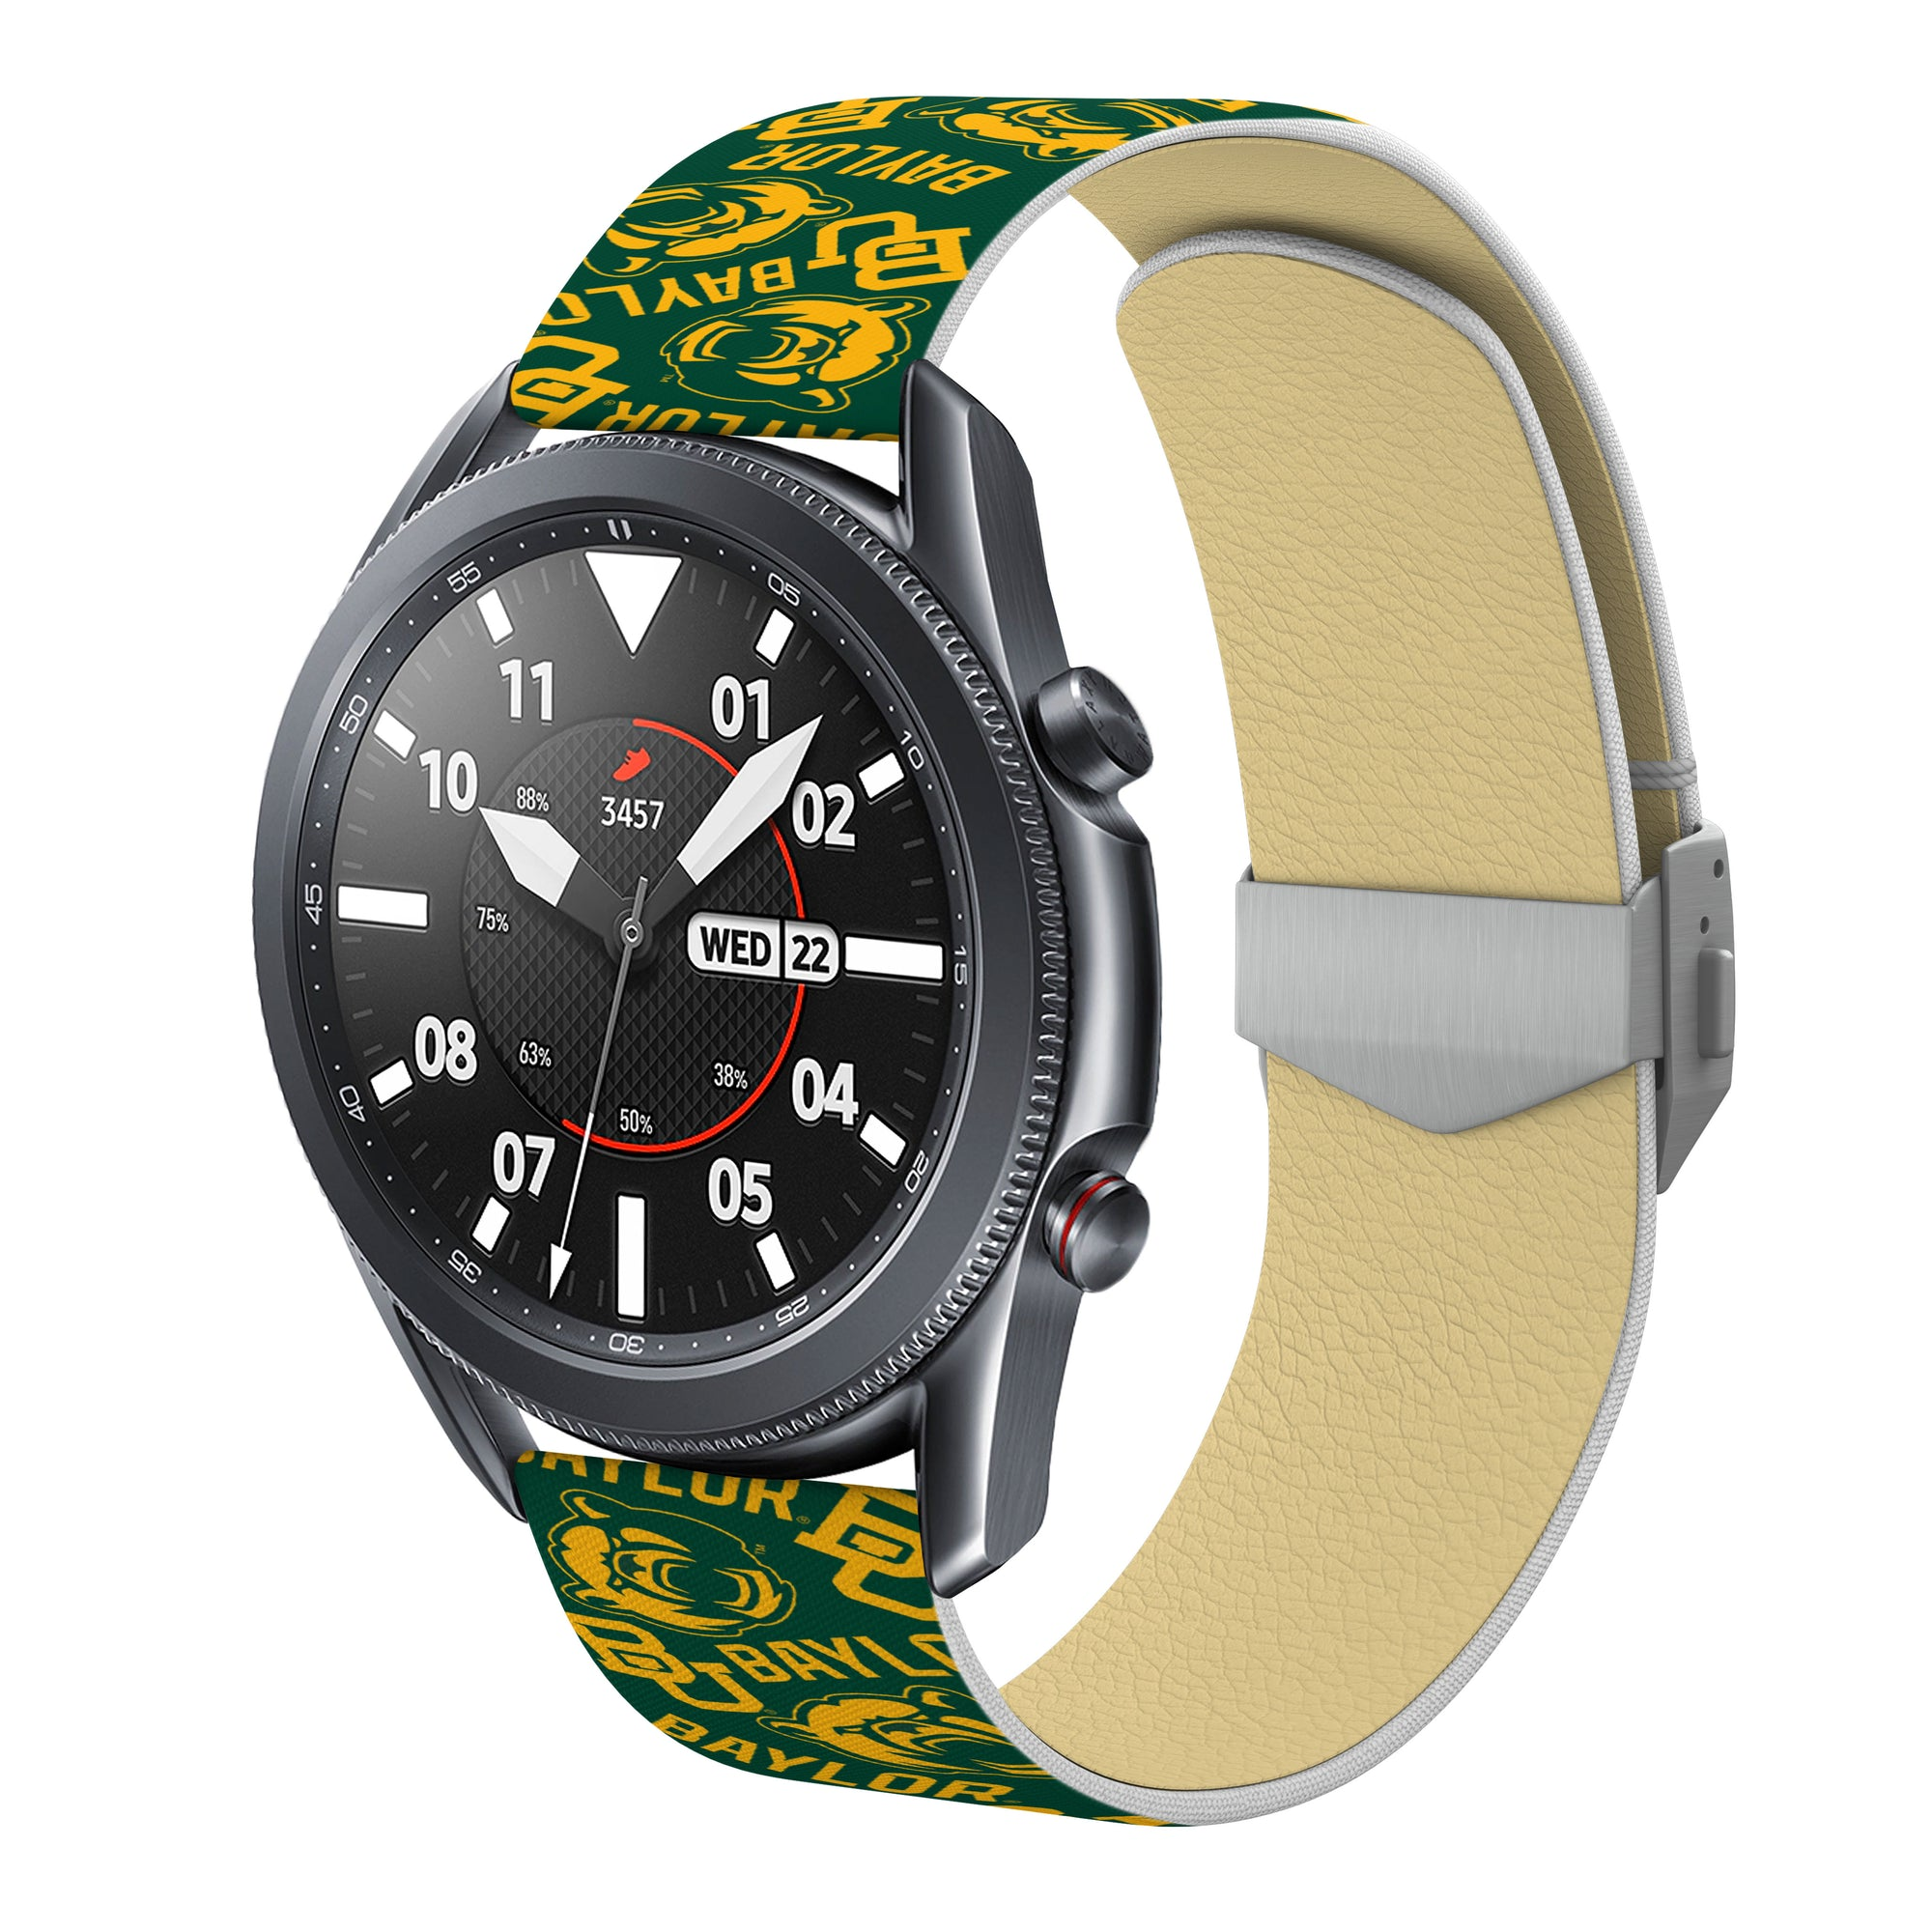 Baylor Bears Full Print Quick Change Watch Band With Engraved Buckle - AffinityBands